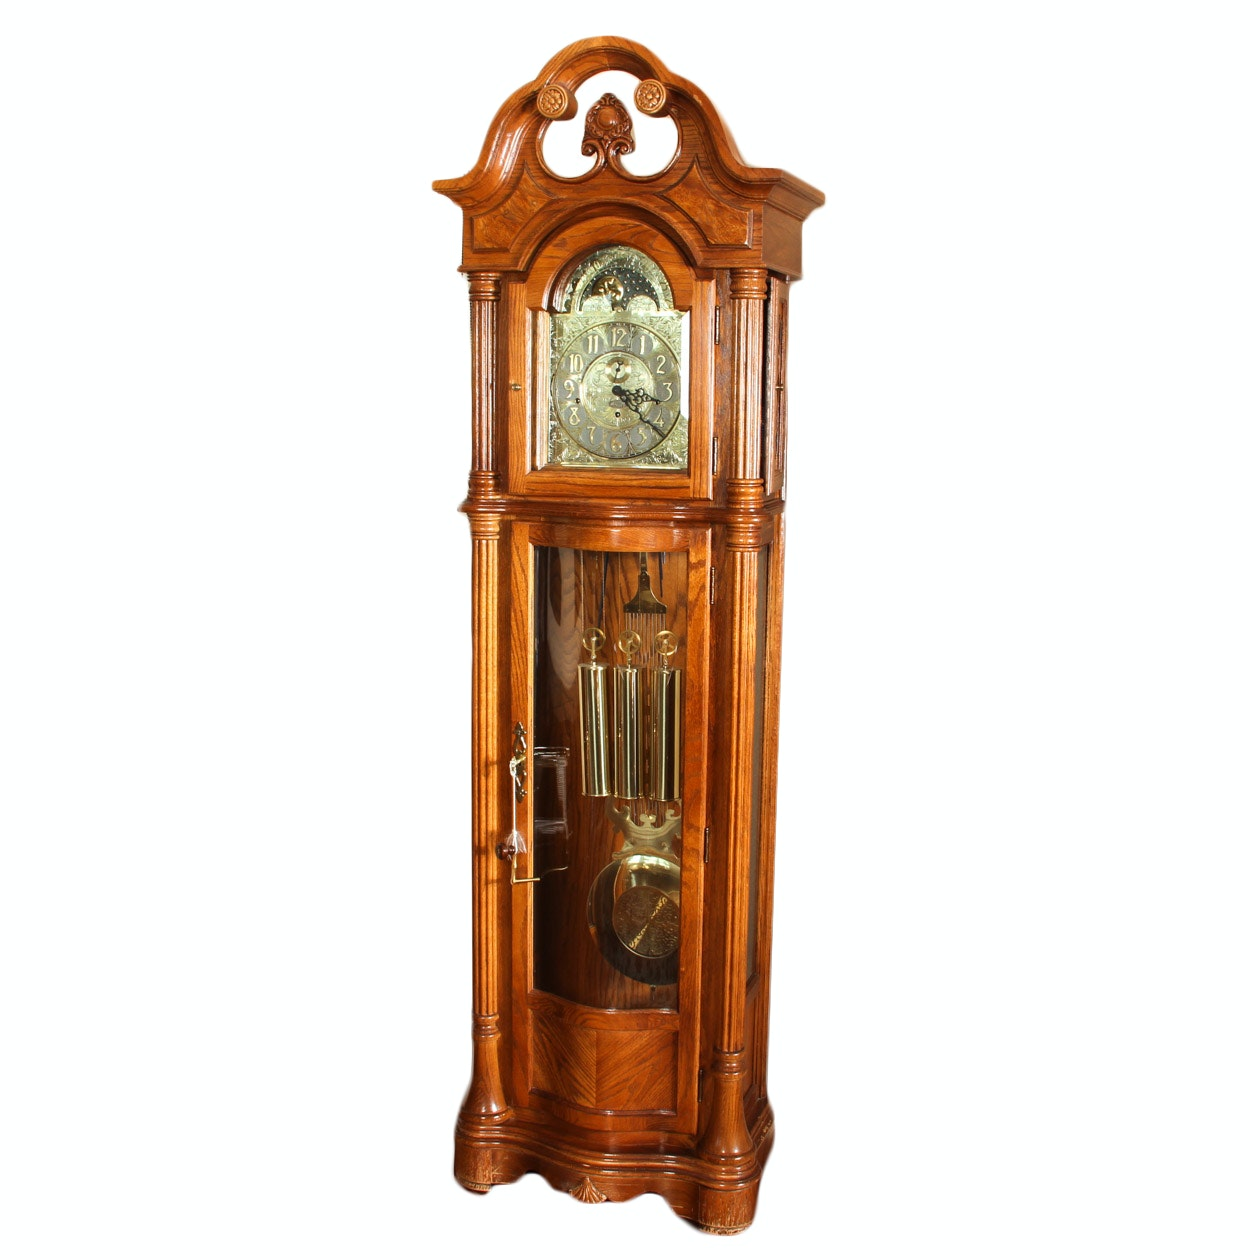 Contemporary Grandfather Clock by Ridgeway